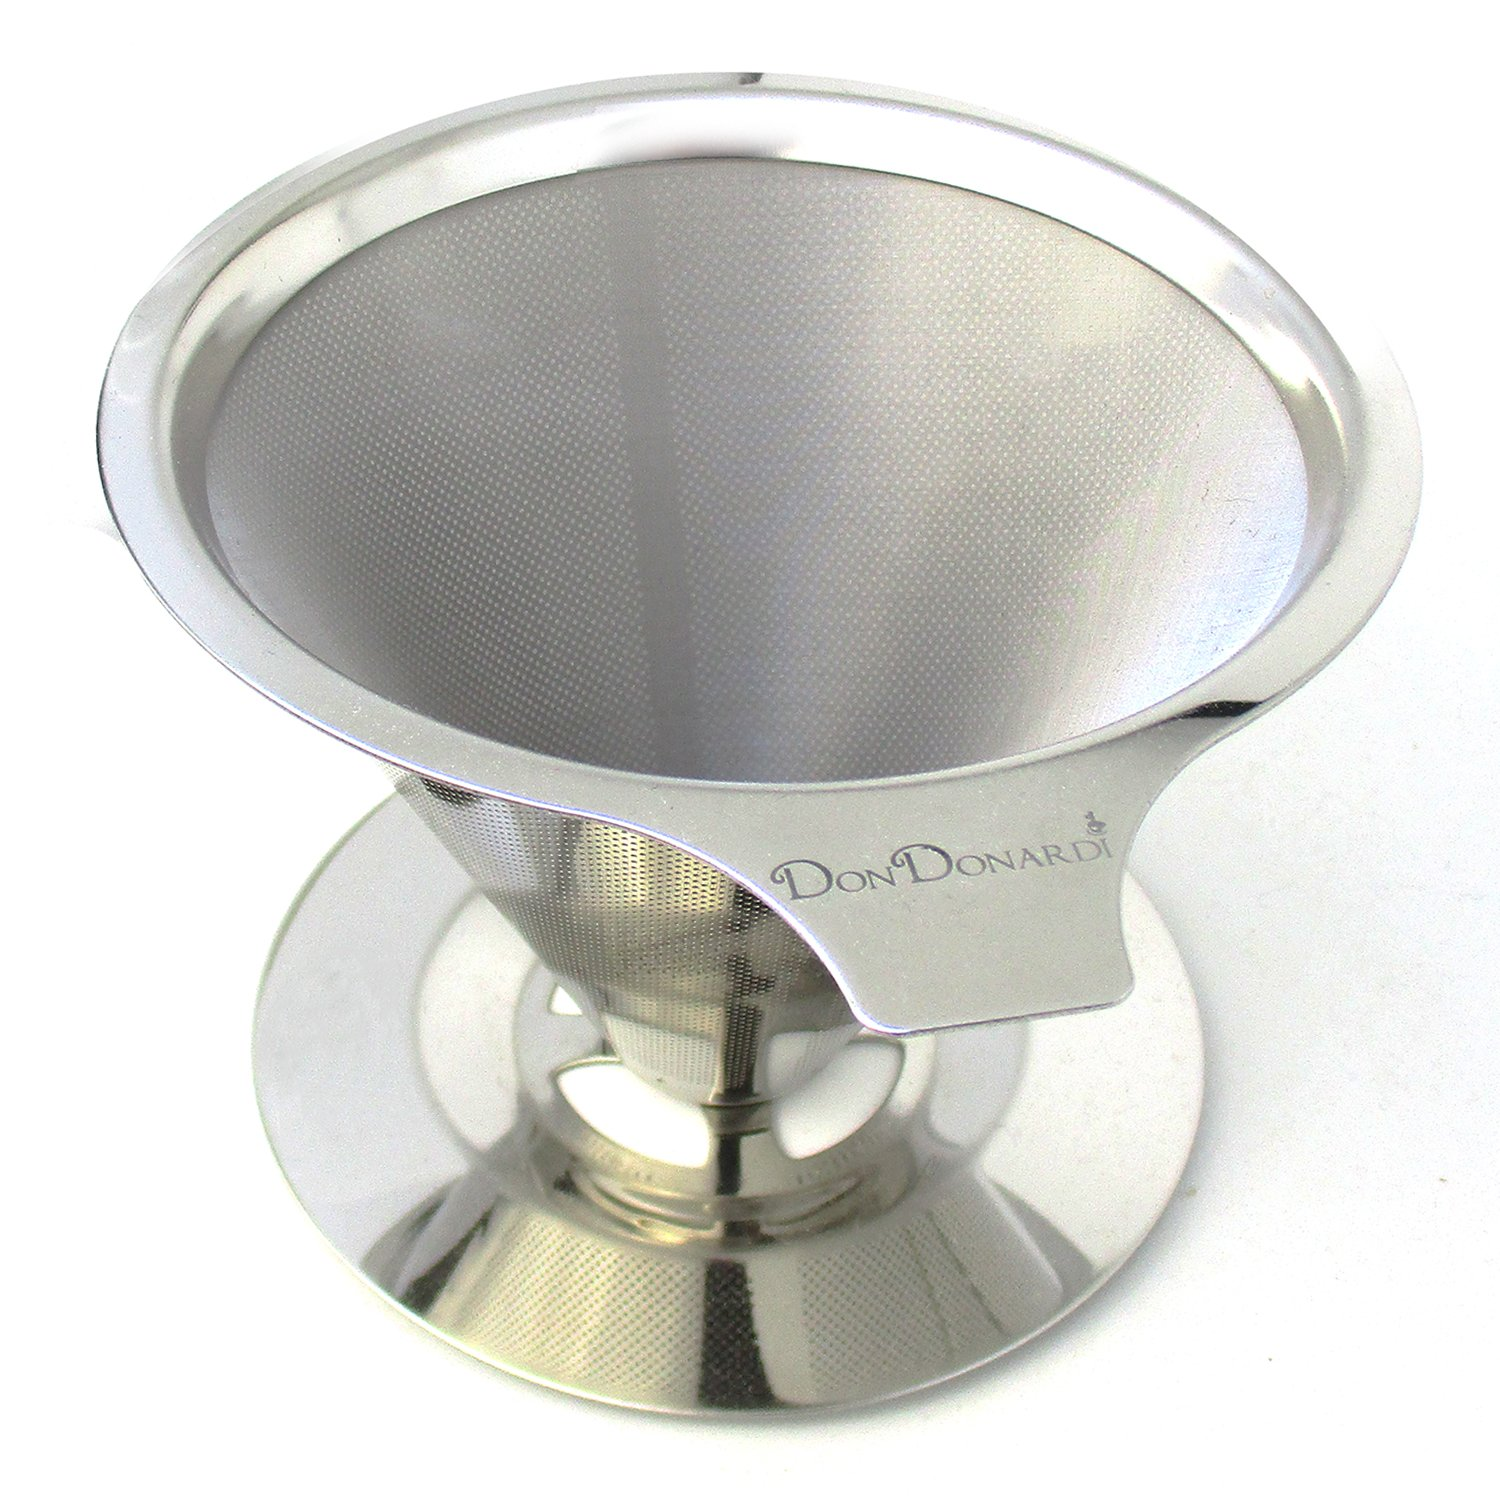 Pour Over Coffee Dripper Maker Filter Reusable Brewer Stainless Steel Personal Strainer Pour Over Cone DonDonardi